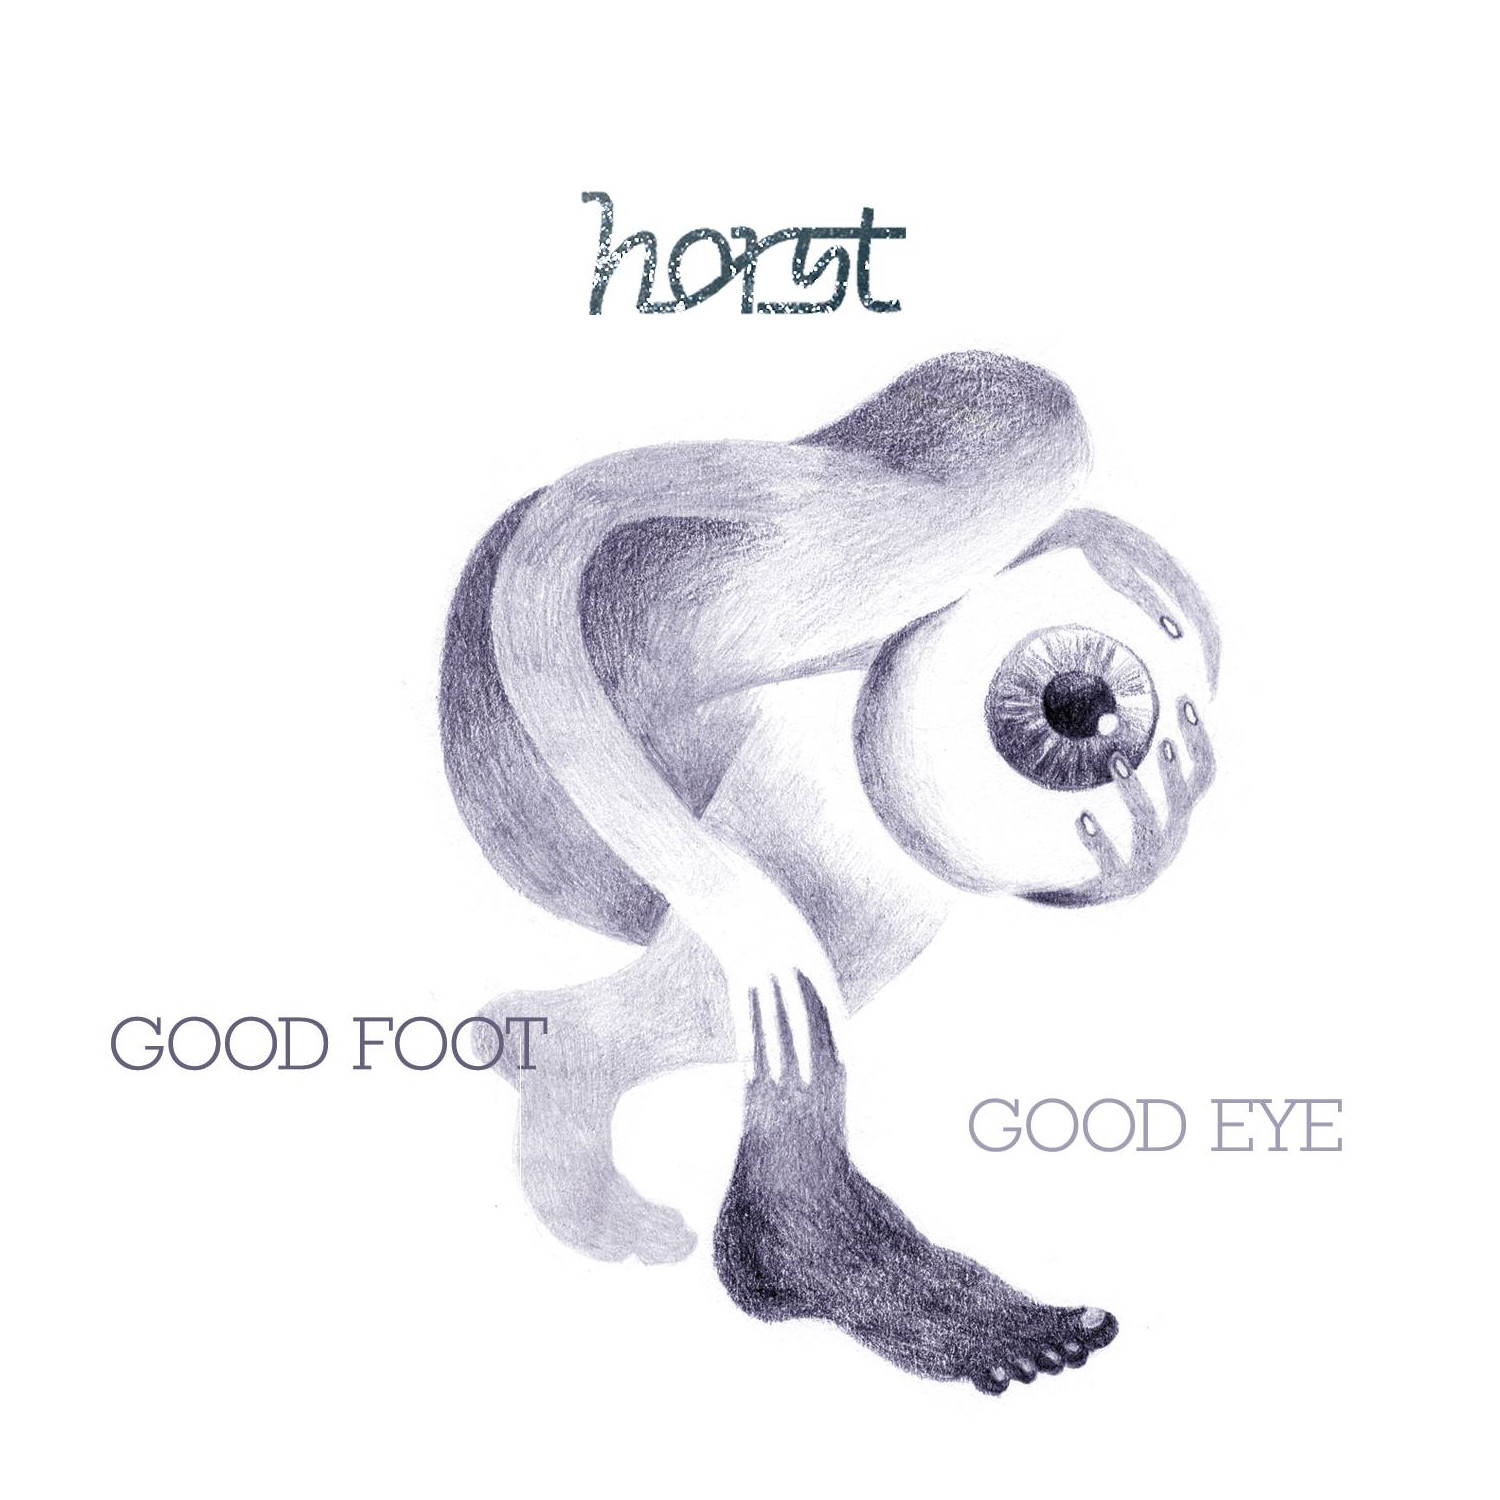 "HORTS ""Good foot good eye"" (2018)"